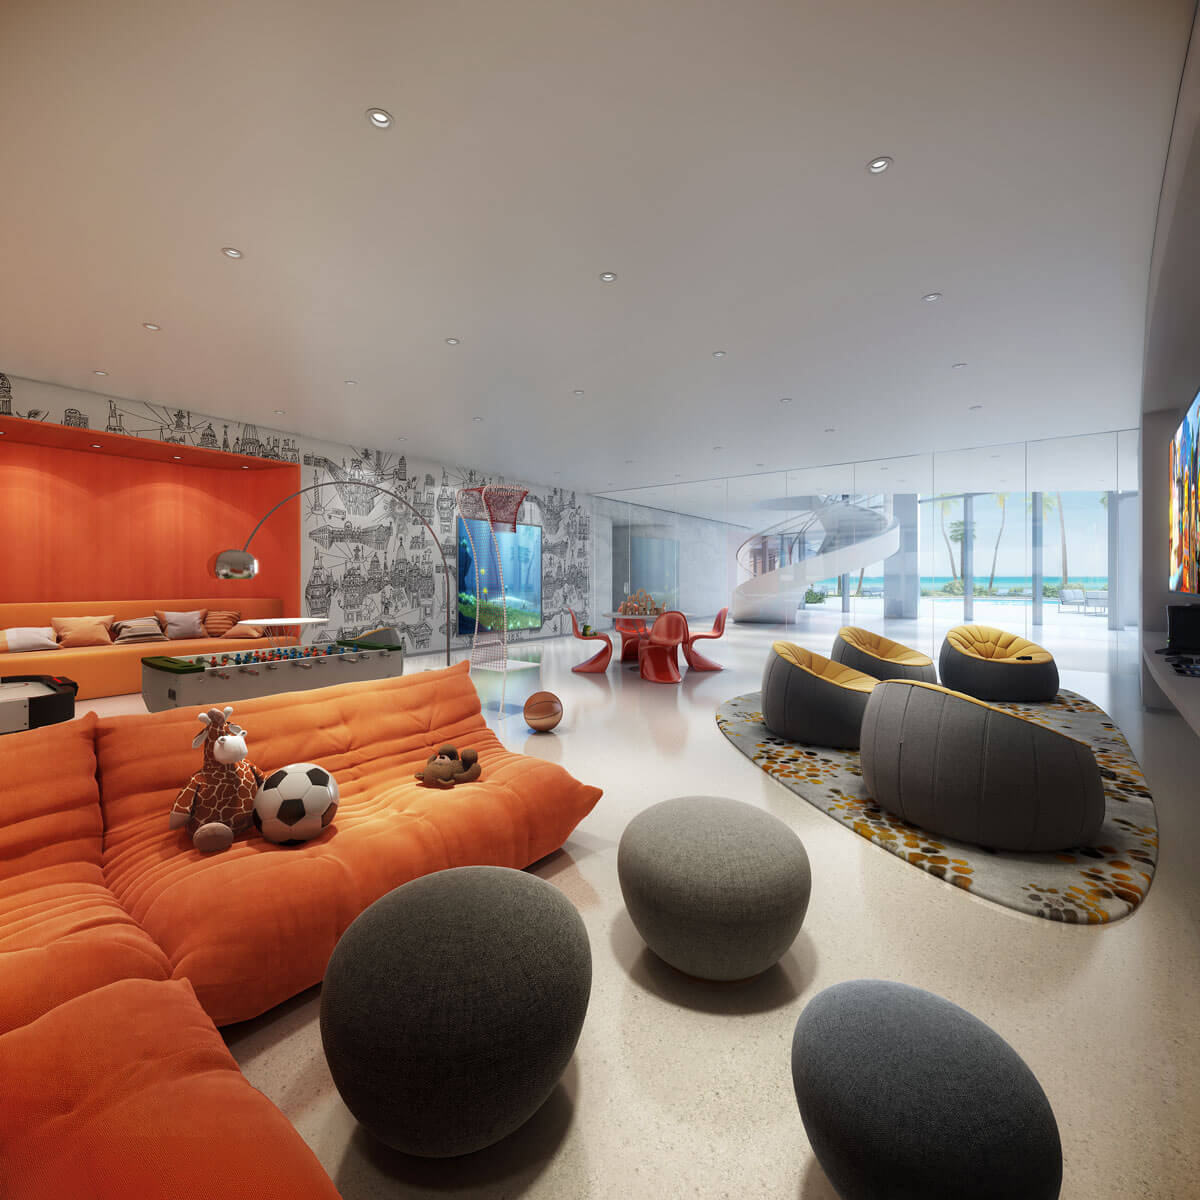 Apartments For Sale In Miami: Penthouses For Sale In Miami, Sunny Isles Beach, And Miami